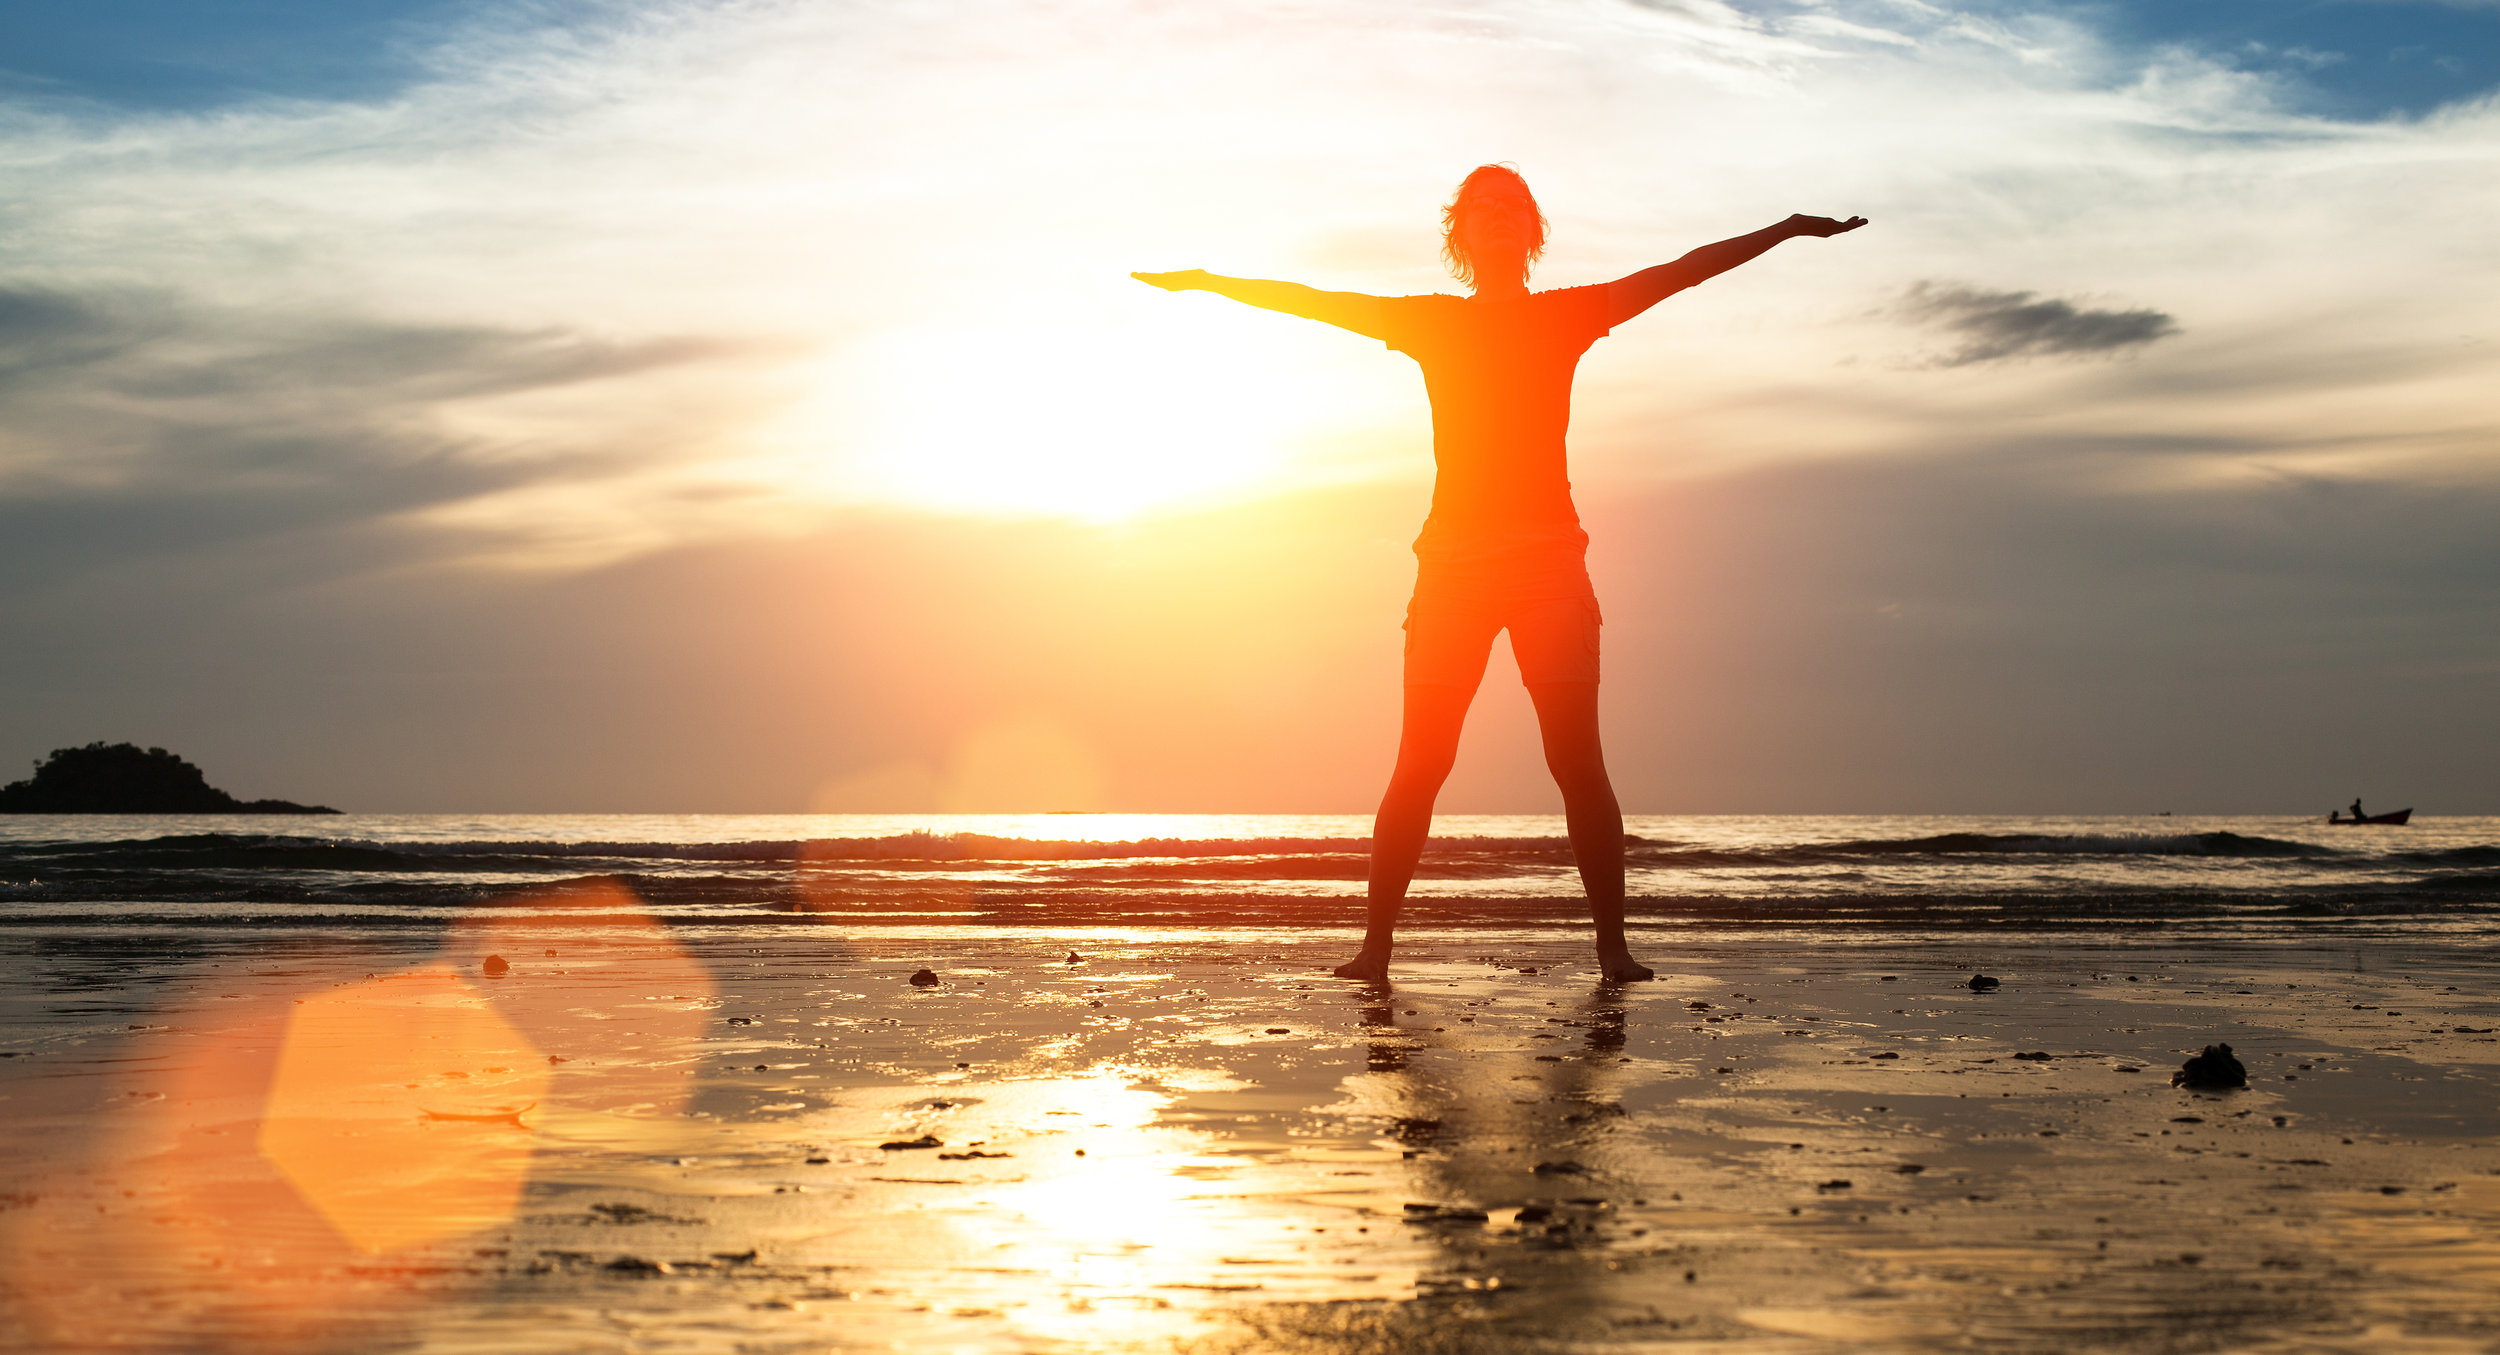 Promote Health, Vitality, & Greater Awareness - Click To Learn More About Qigong...